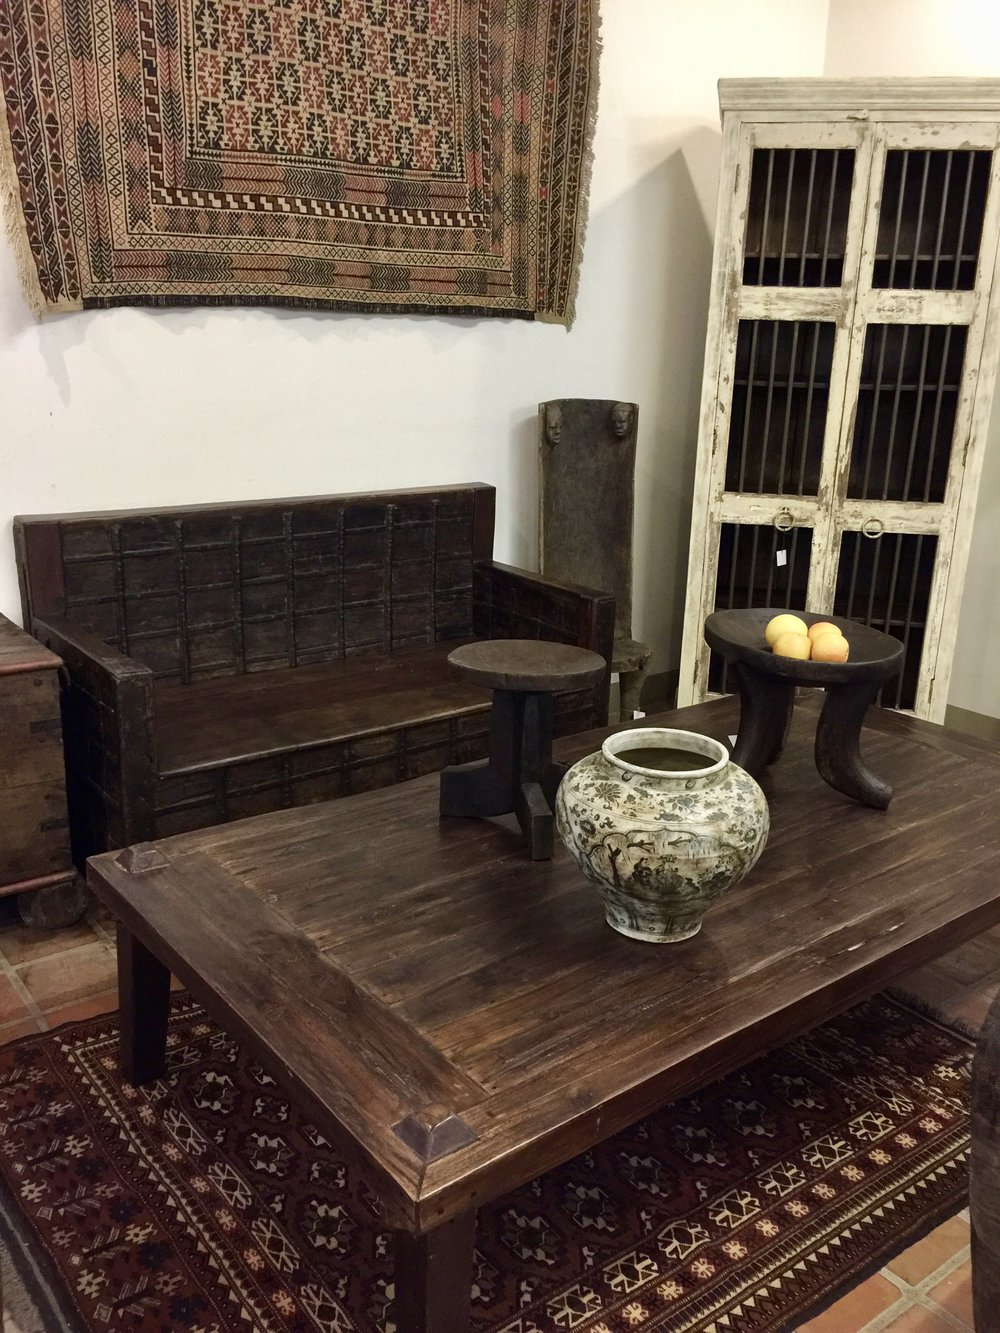 Gujarat Bench and Java Coffee Table